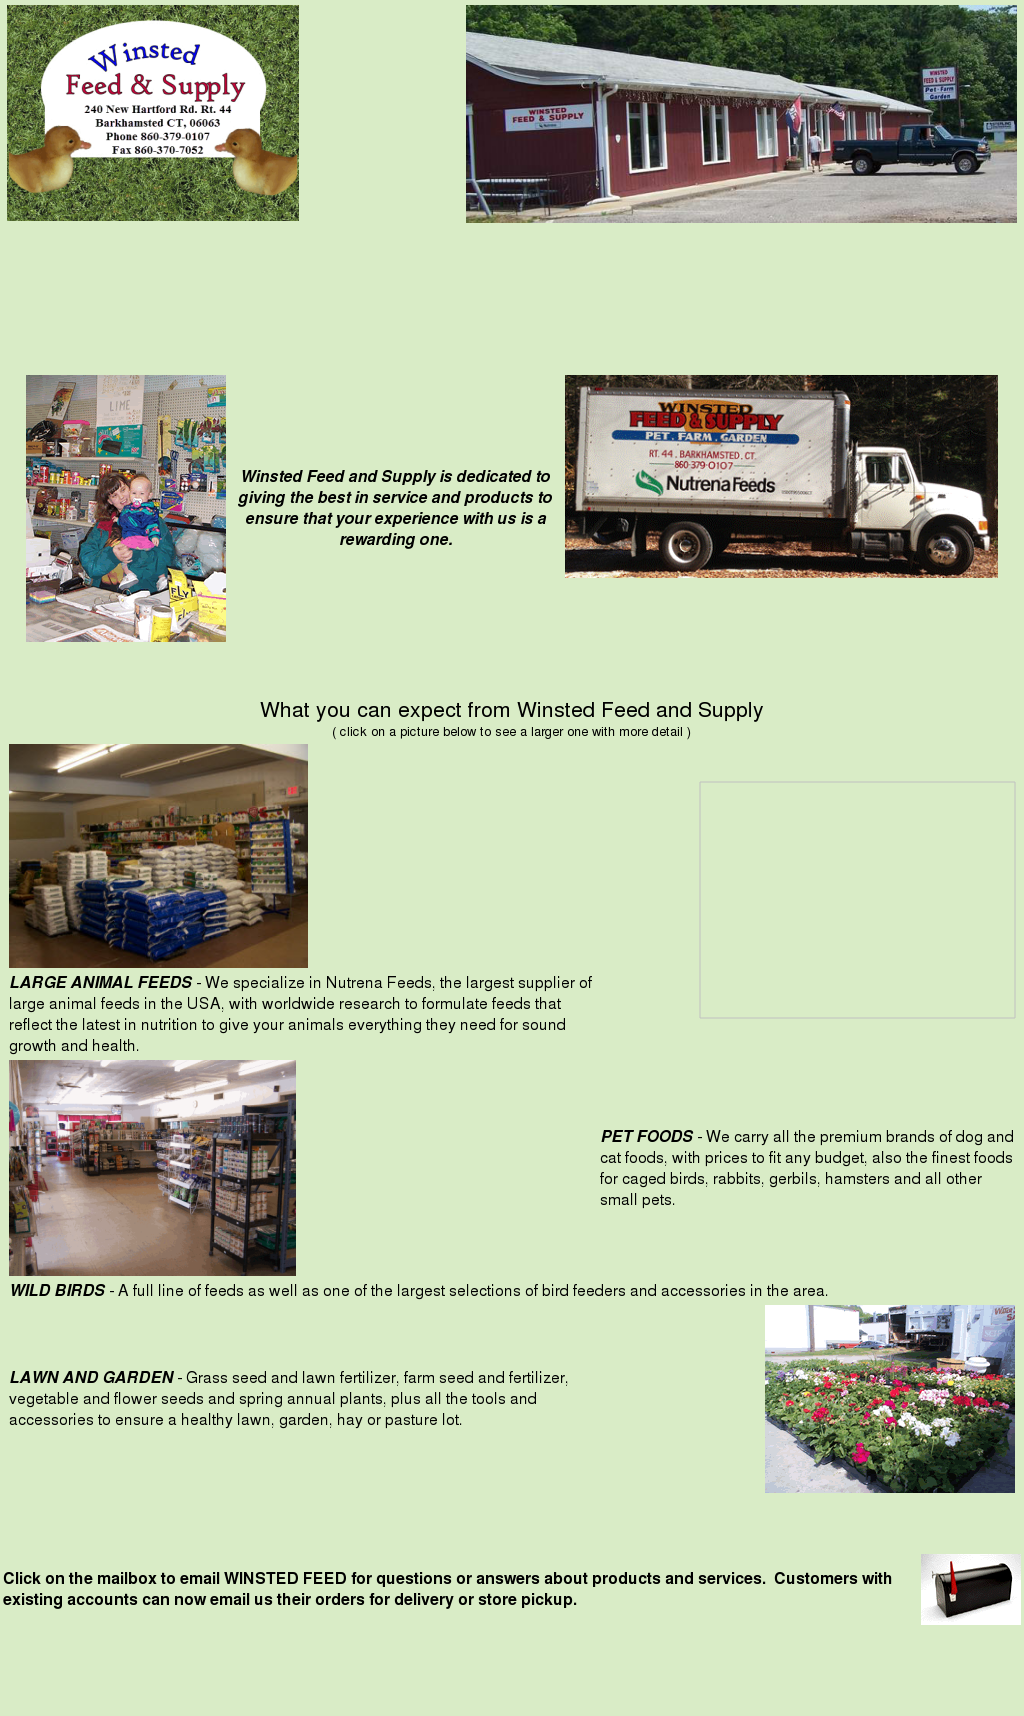 Winsted Feed and Supply Competitors, Revenue and Employees